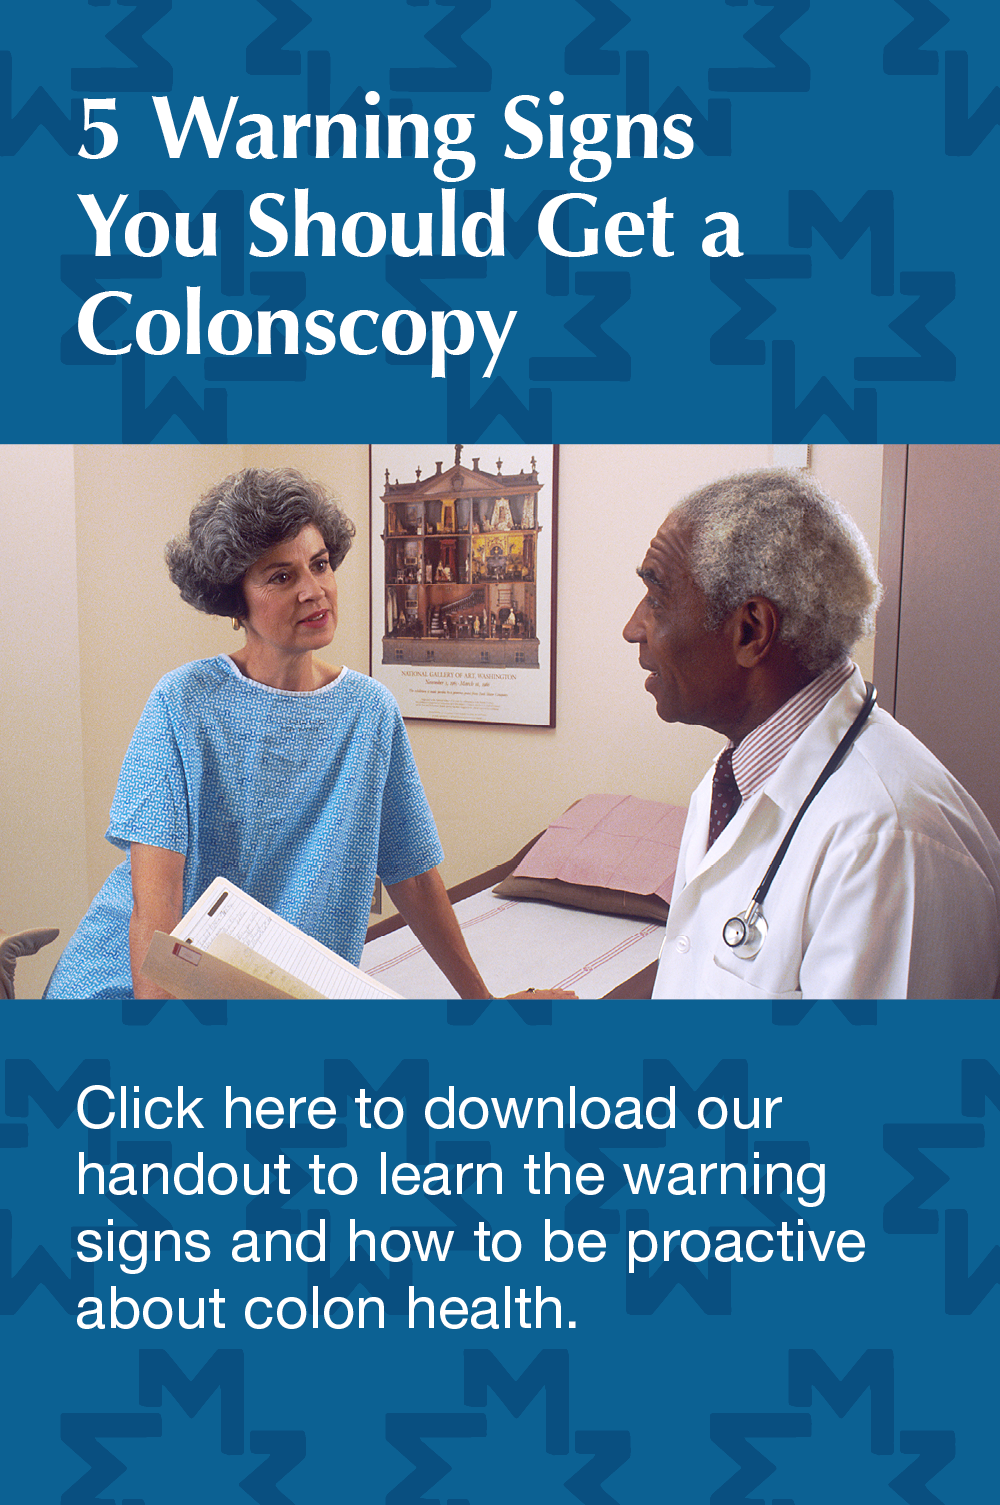 colonoscopy whitepaper landing page image link